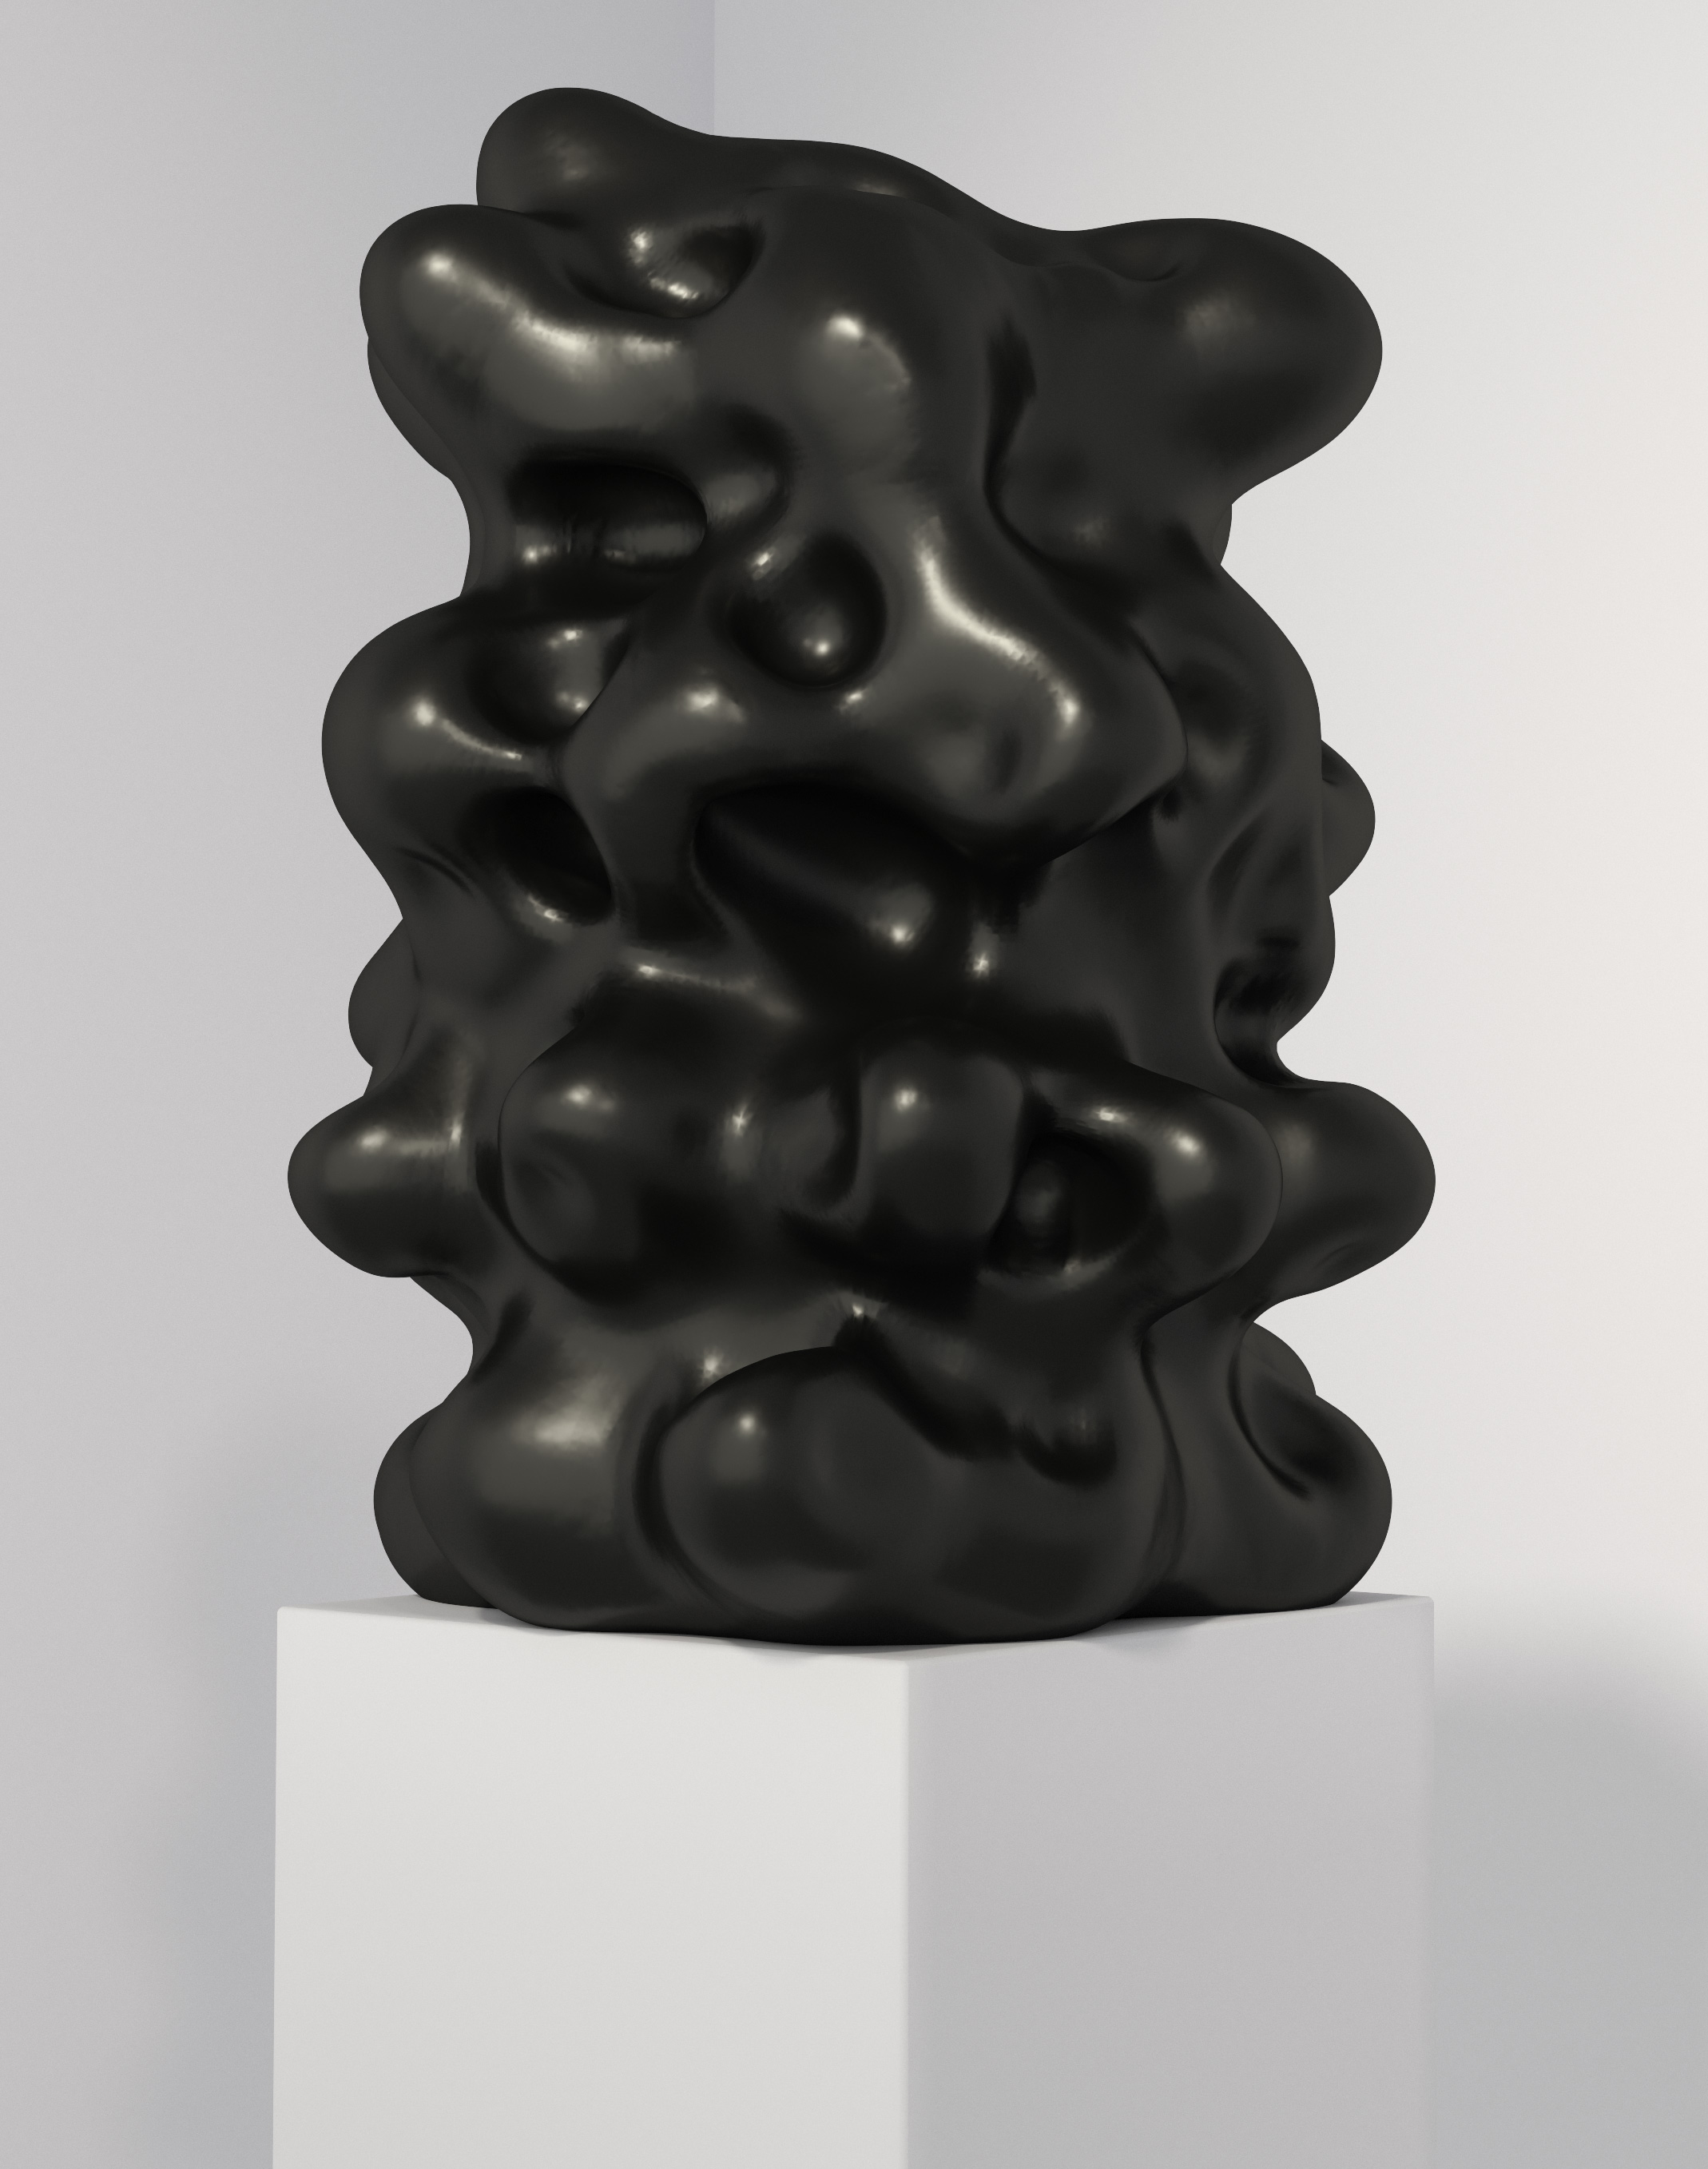 sculpture3(shot1).jpg